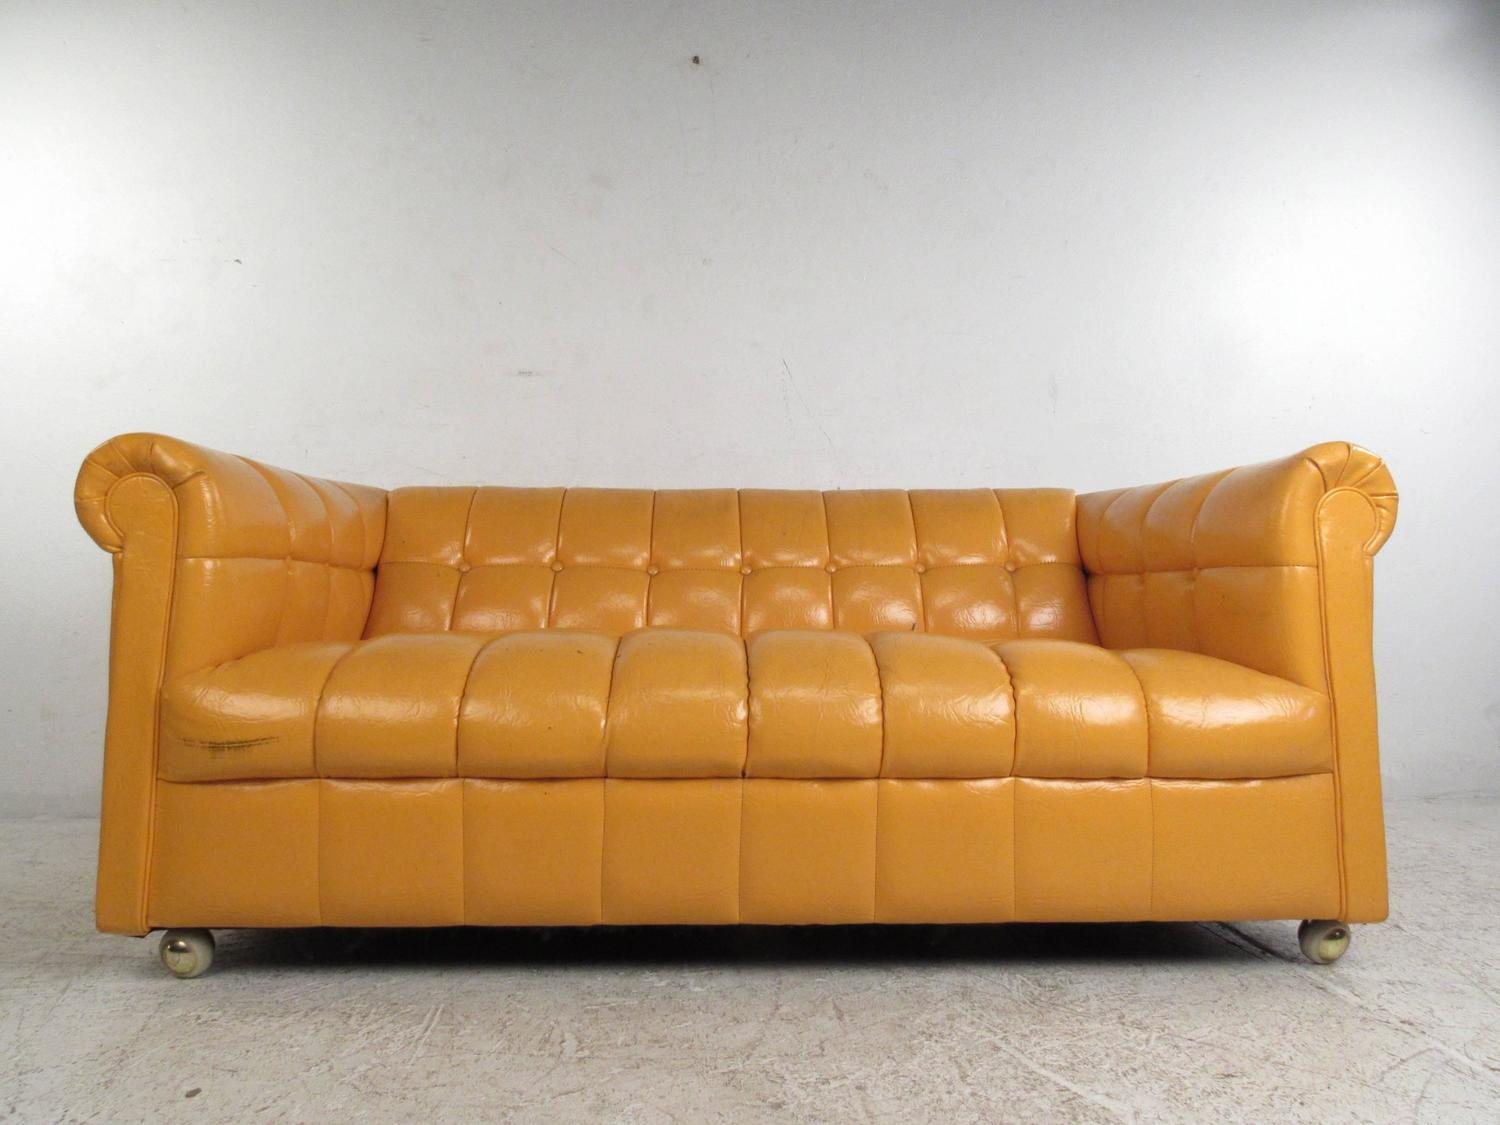 Mid century modern tufted chesterfield sofa for sale at for Tufted couches for sale